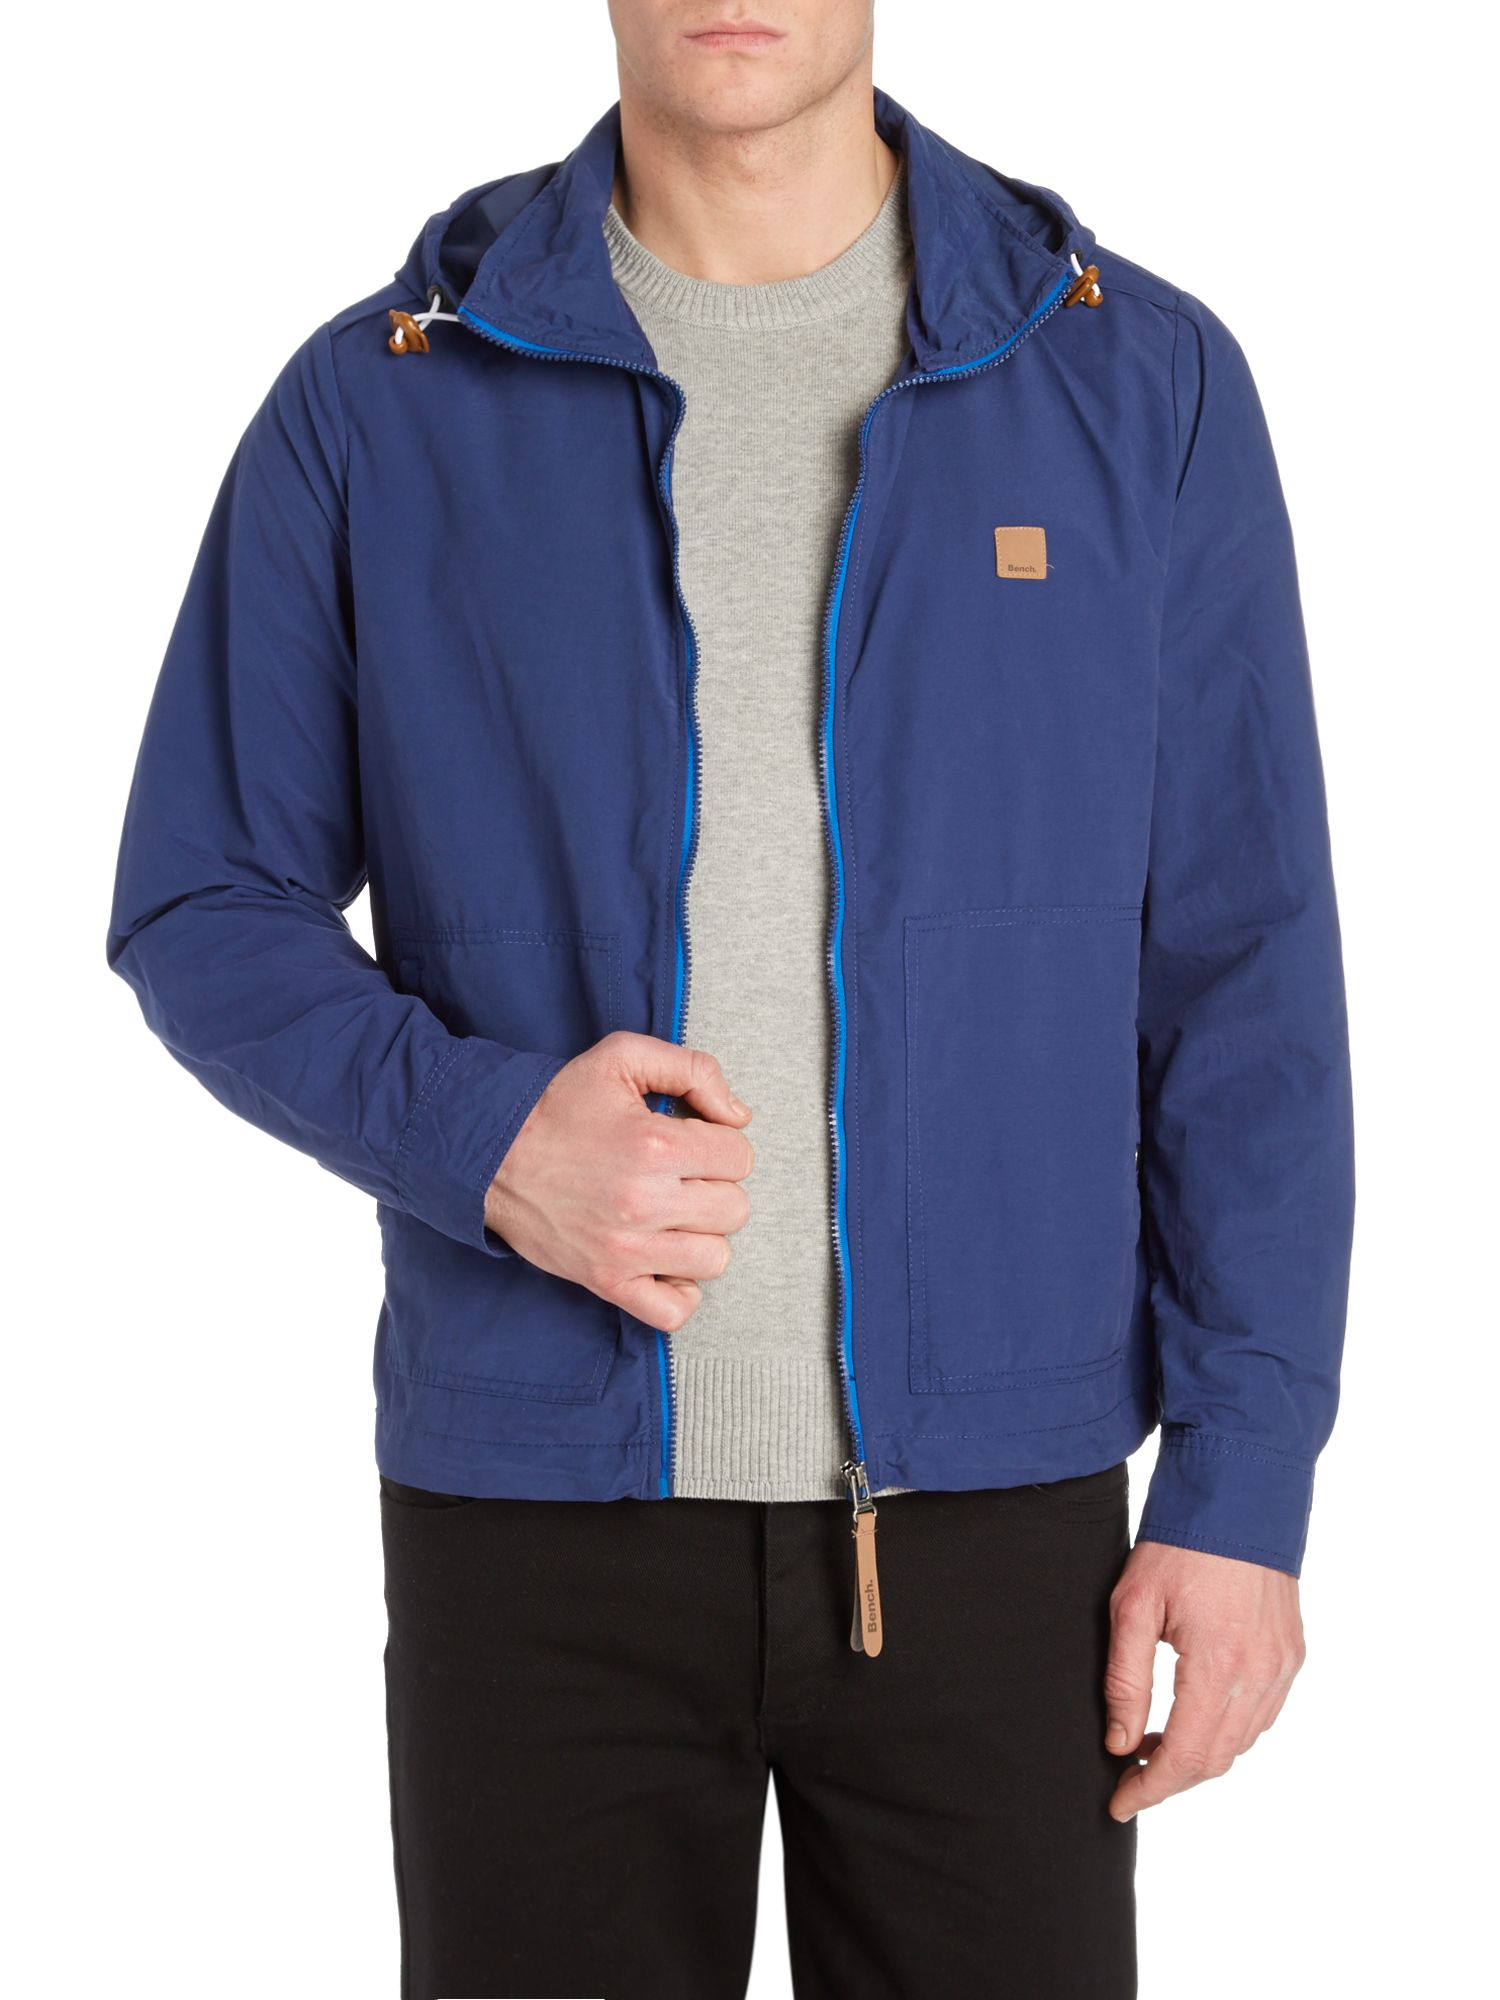 Fisher jacket